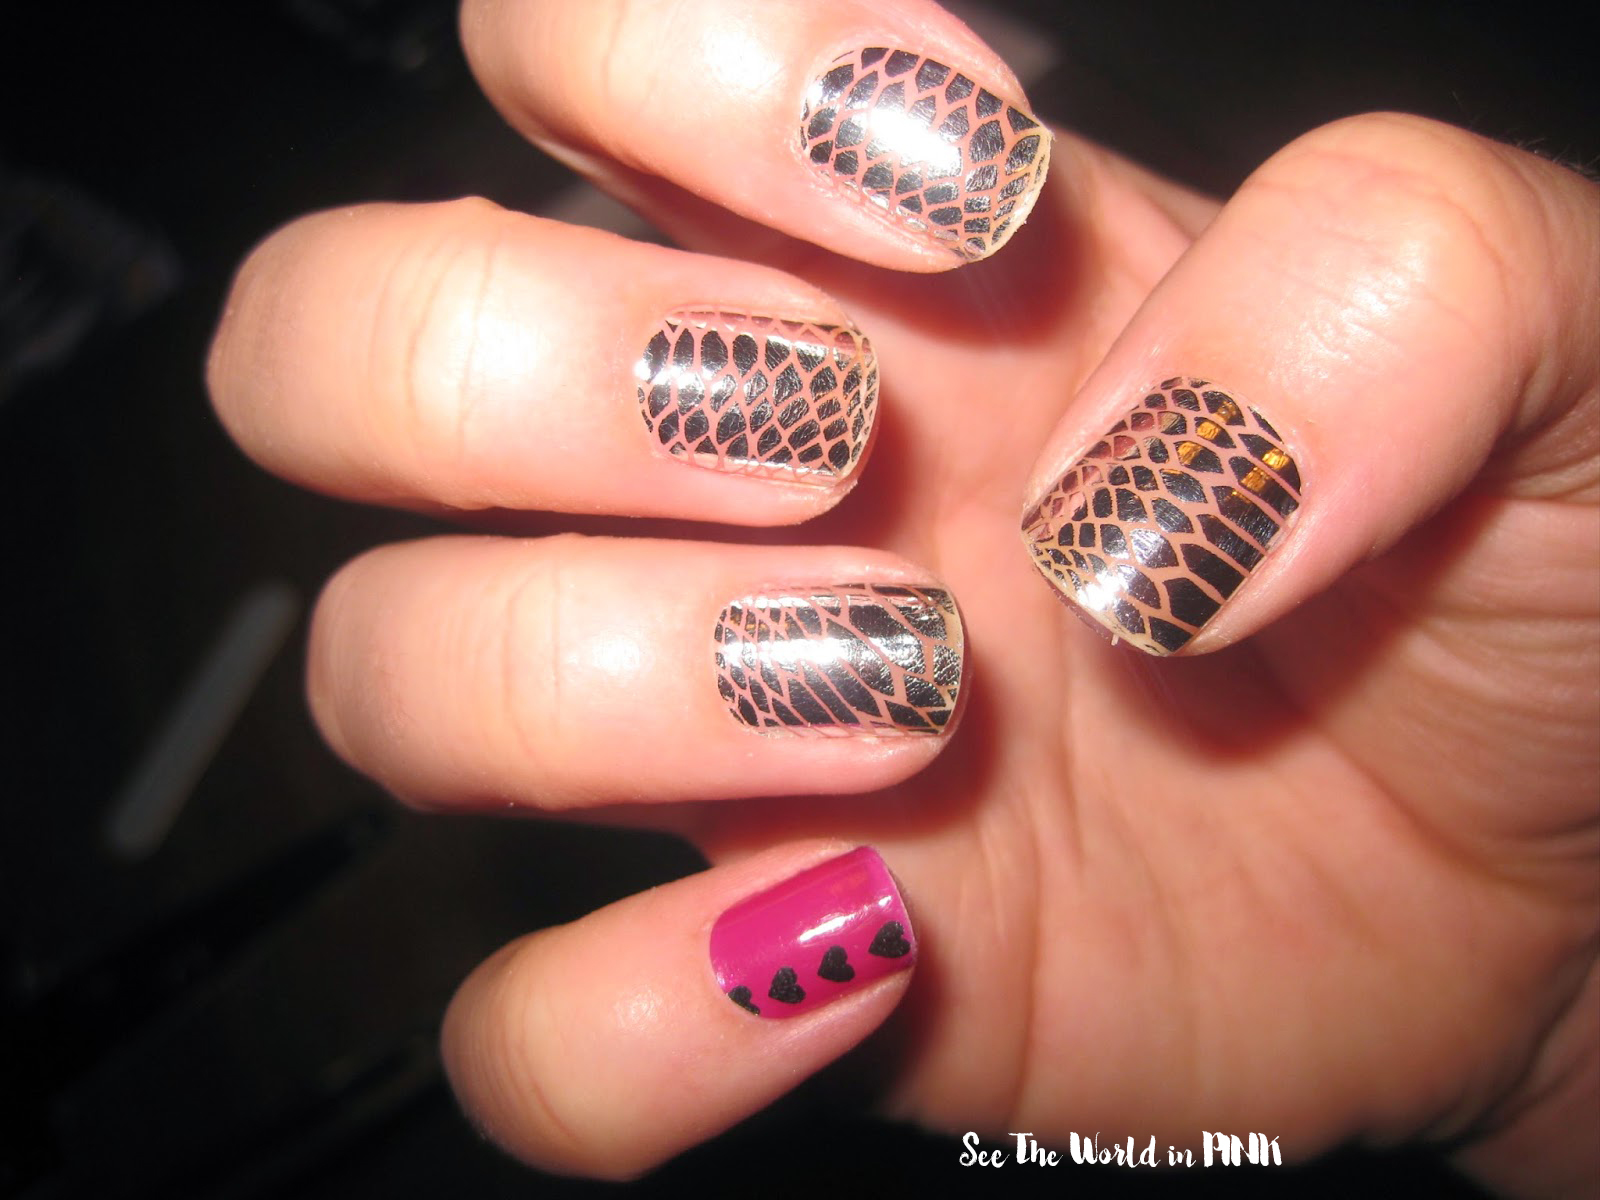 Manicure Monday - Essie and Minx Nail Stickers! | See the World in PINK